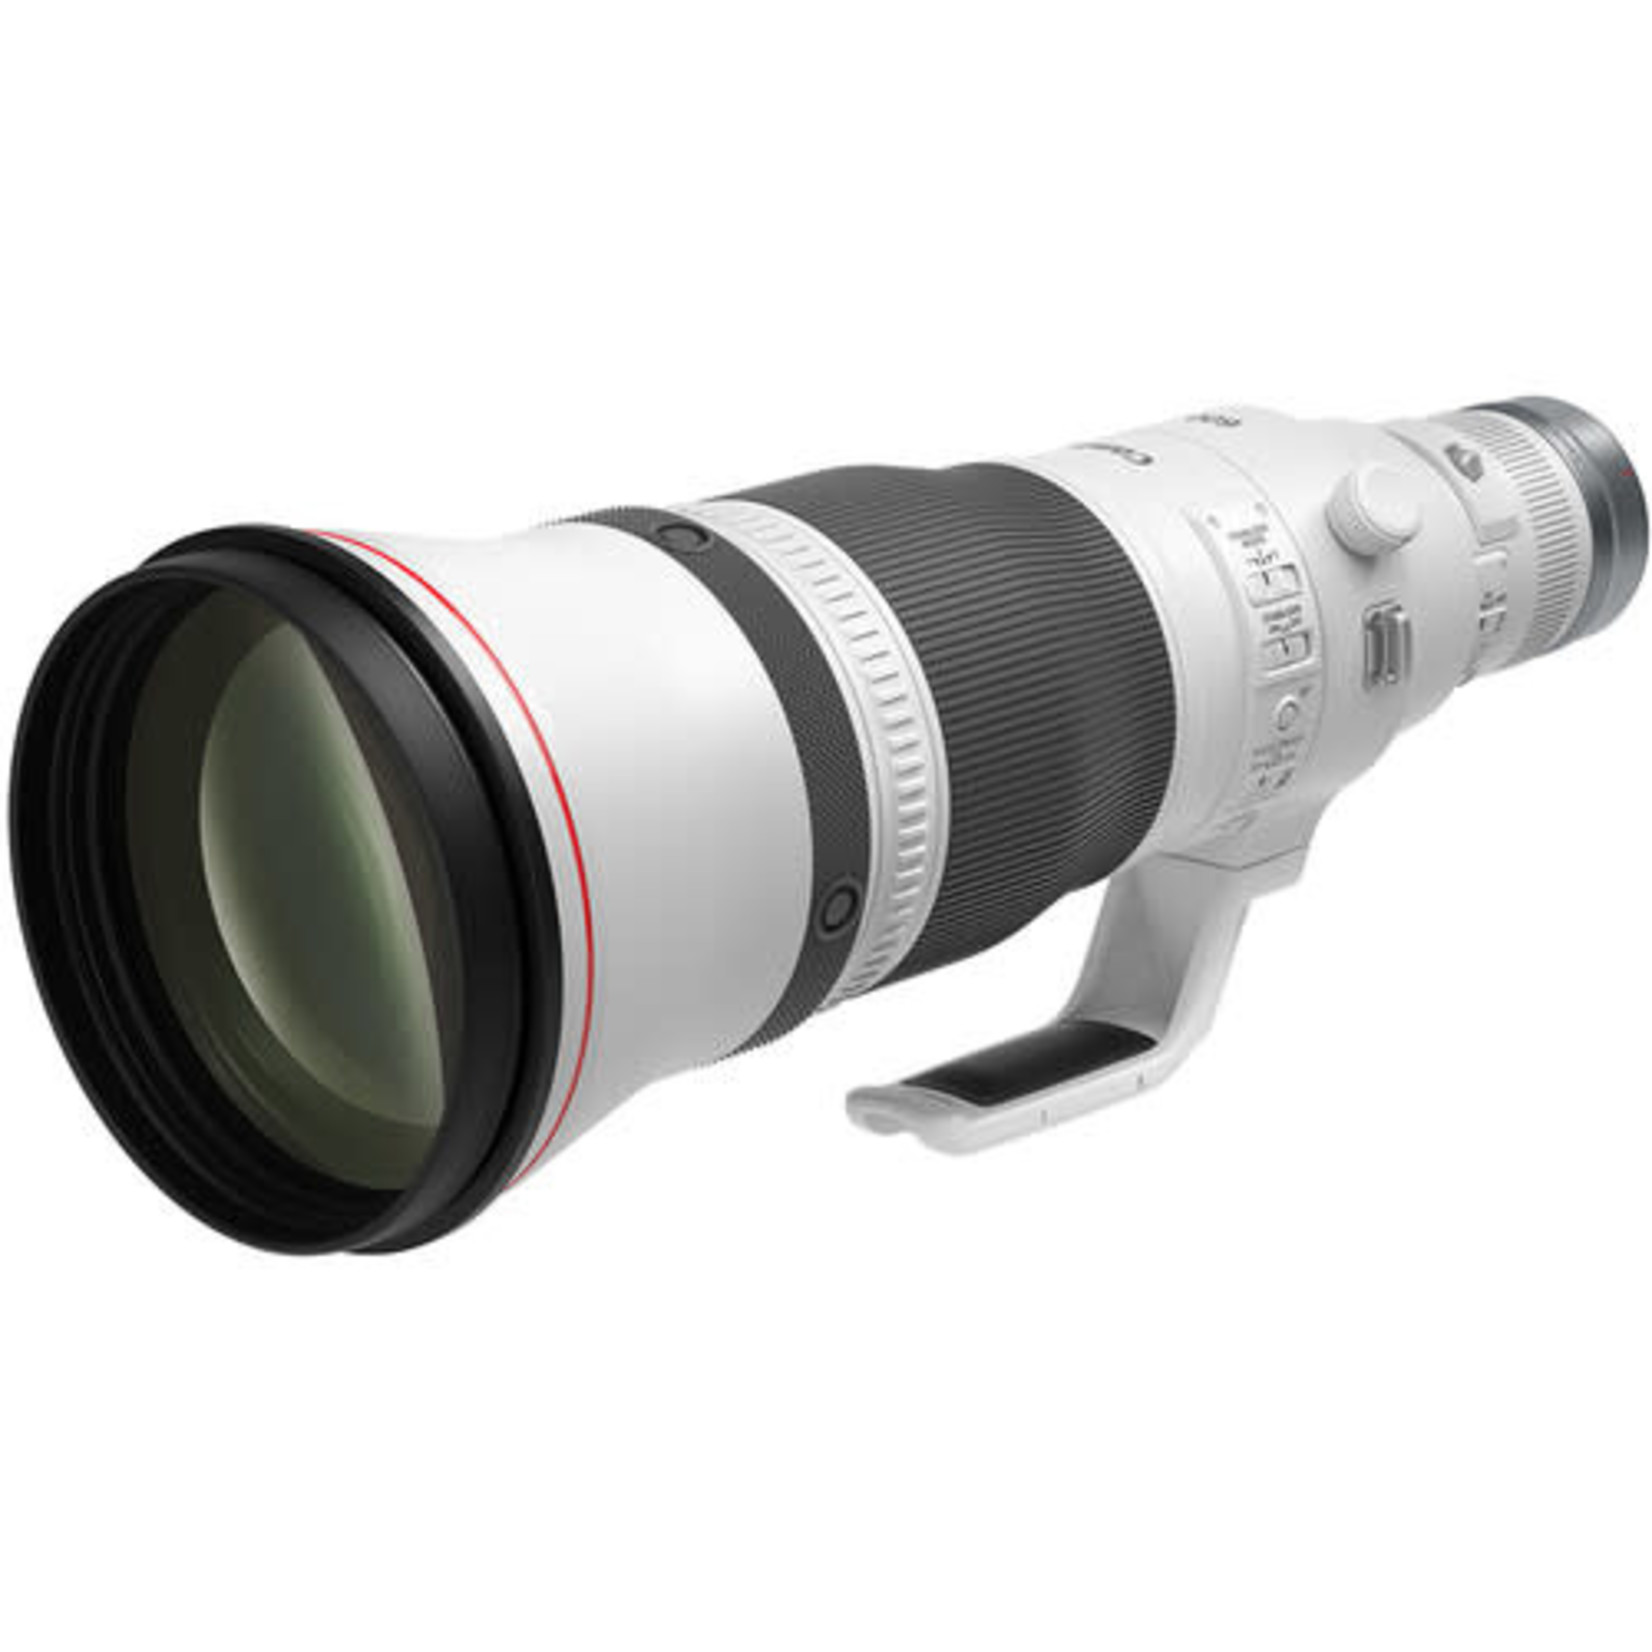 Canon Canon RF 600mm f/4L IS USM Lens